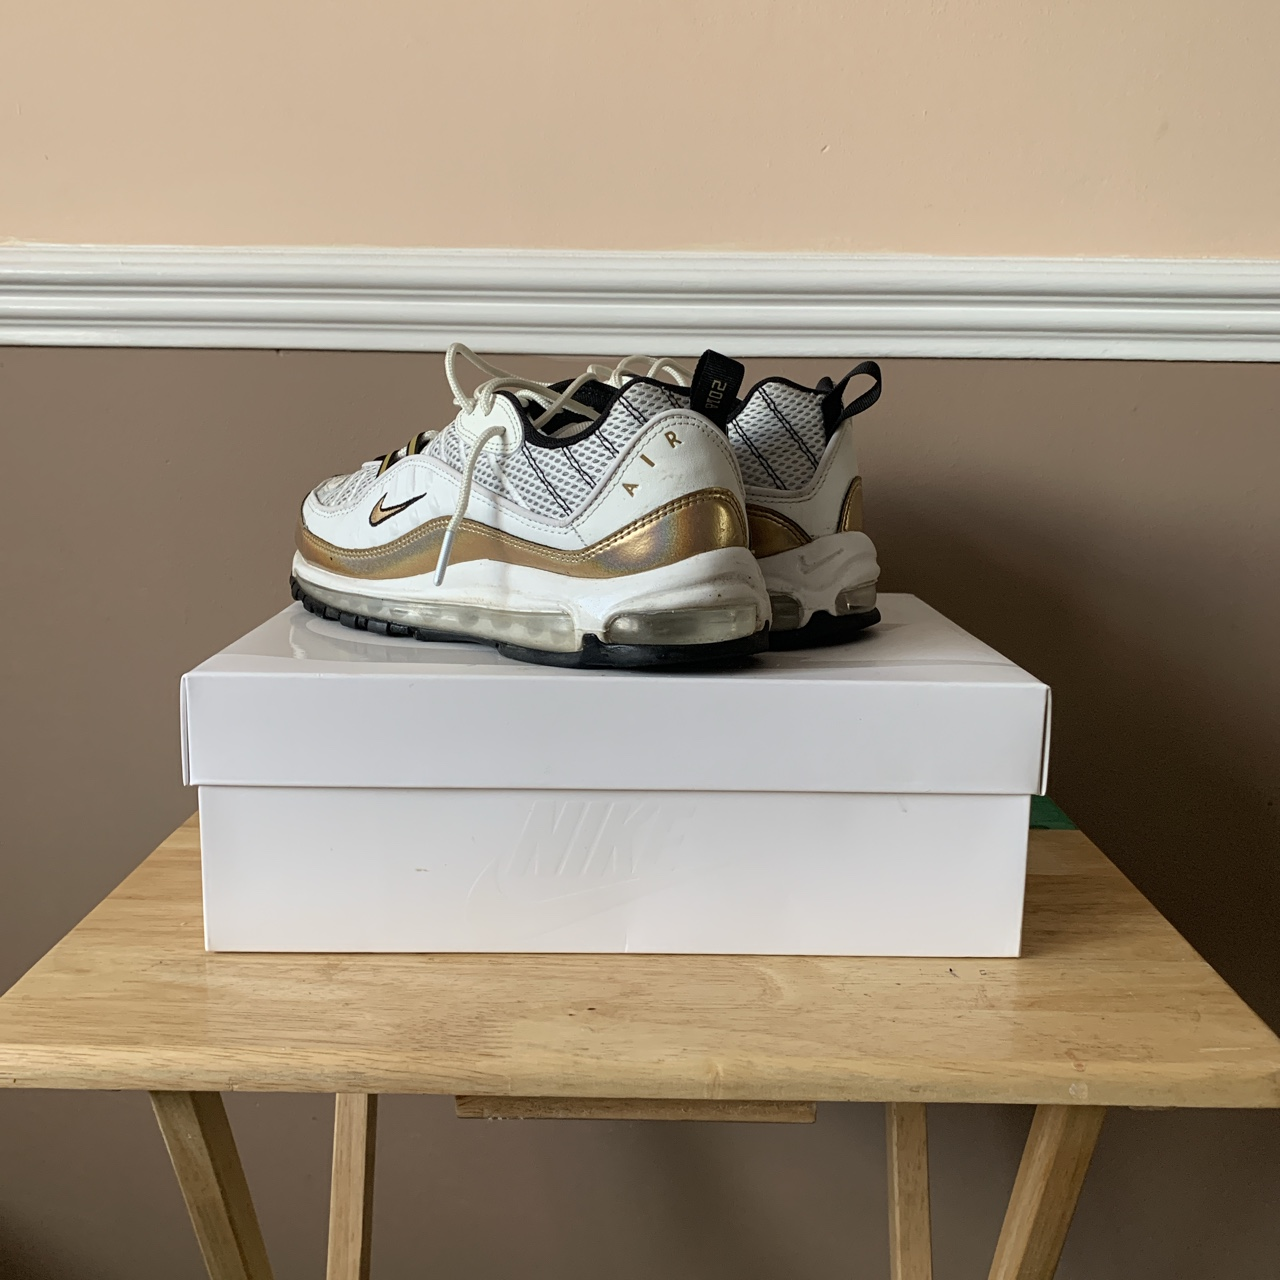 cheaper a11a8 22773 AIR MAX 98 UK HYPERLOCAL UK WHITE/GOLD Willing to... - Depop